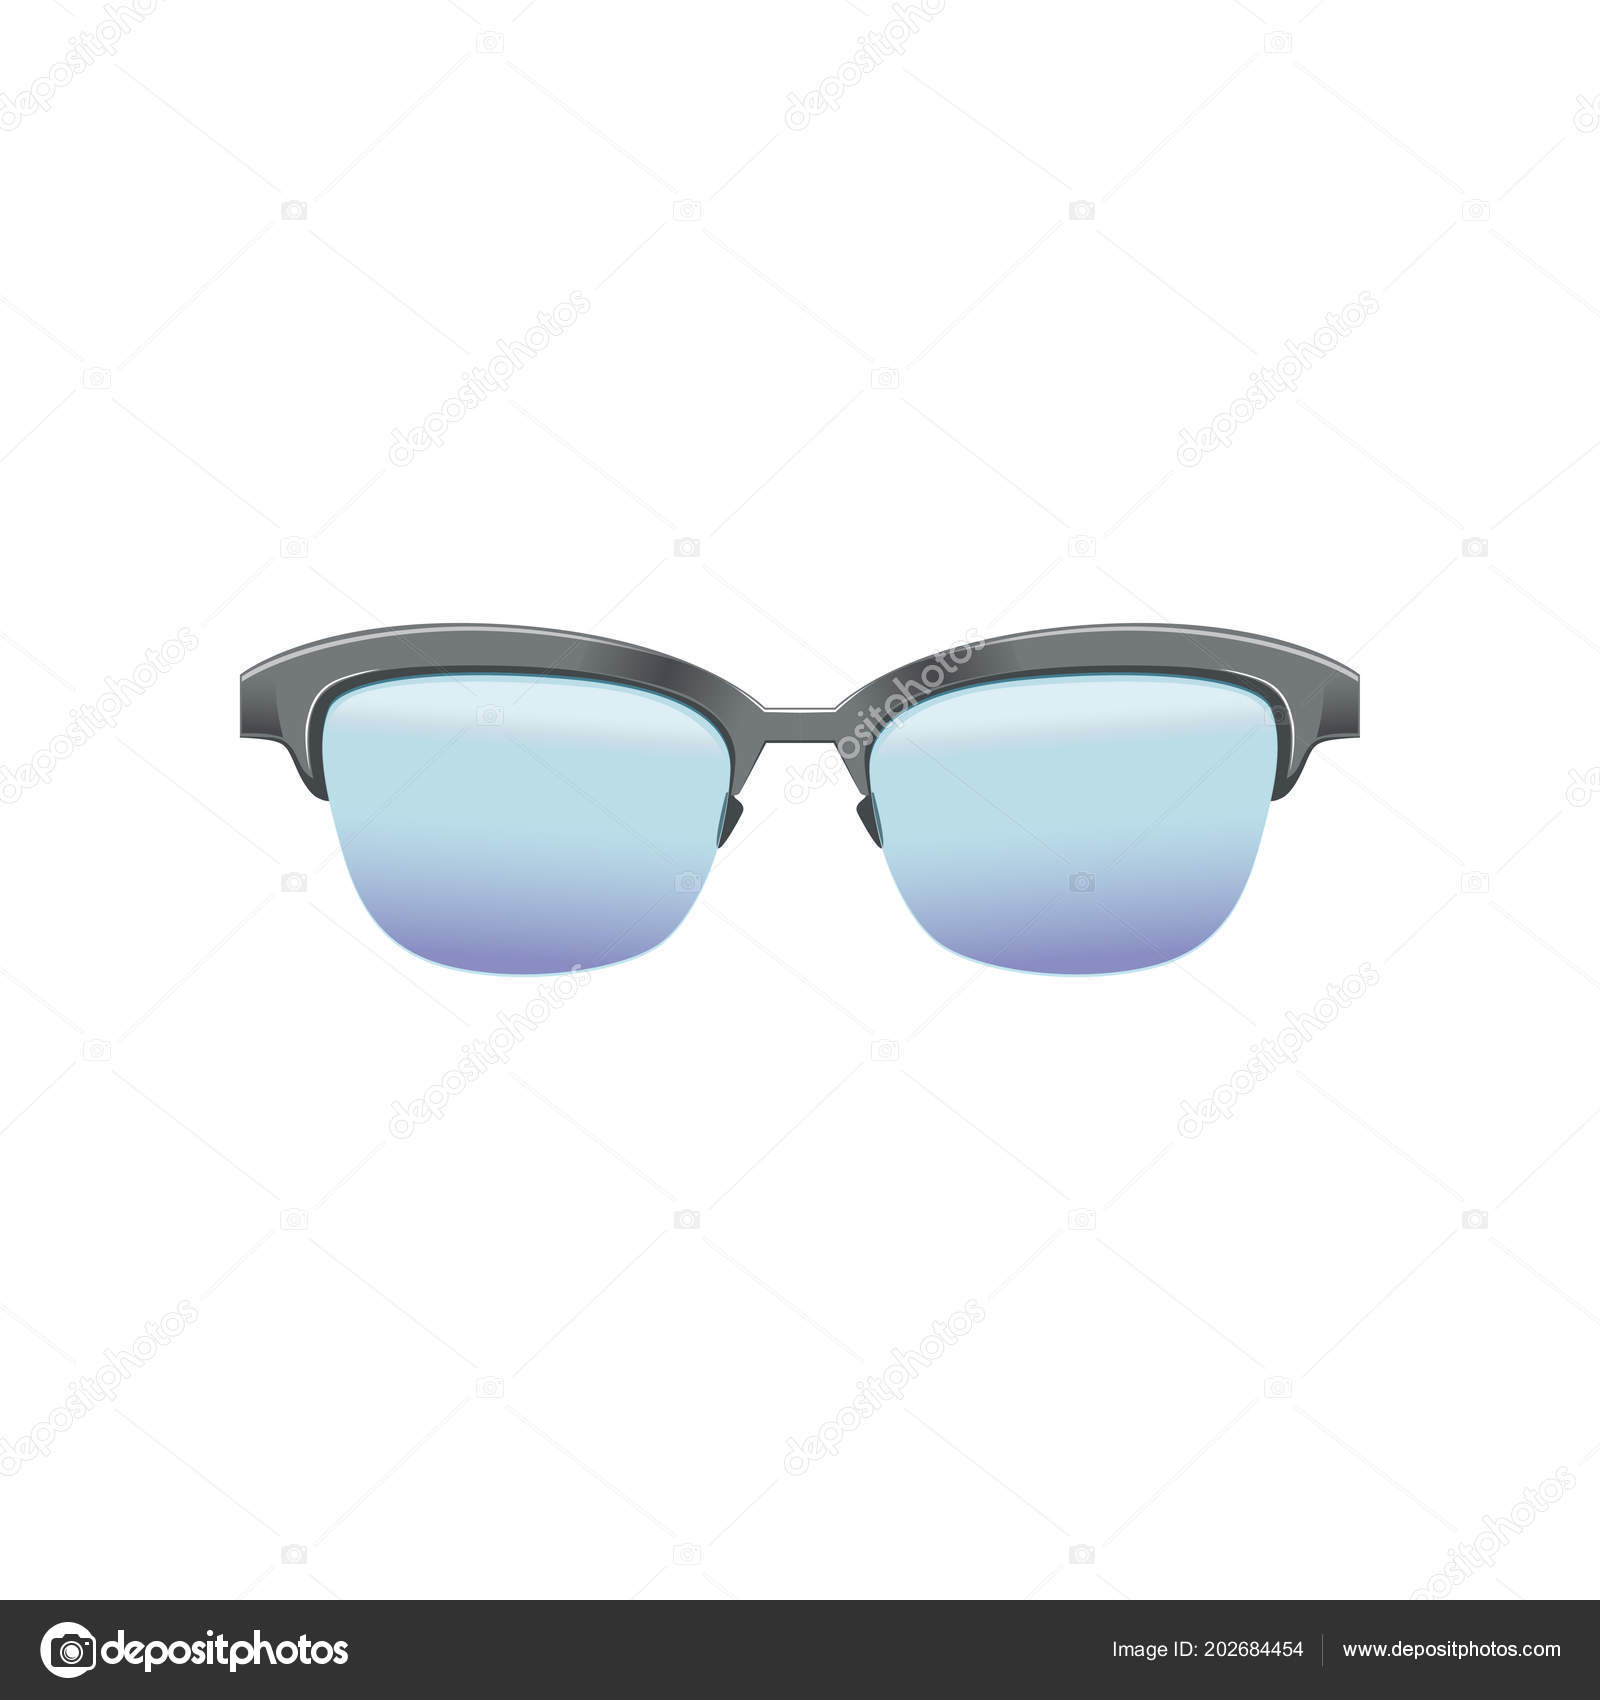 8fbb2f5c14 Classic clubmaster glasses with blue lenses and metallic half frame.  Fashion spectacles for mens. Flat vector design for mobile app– stock  illustration